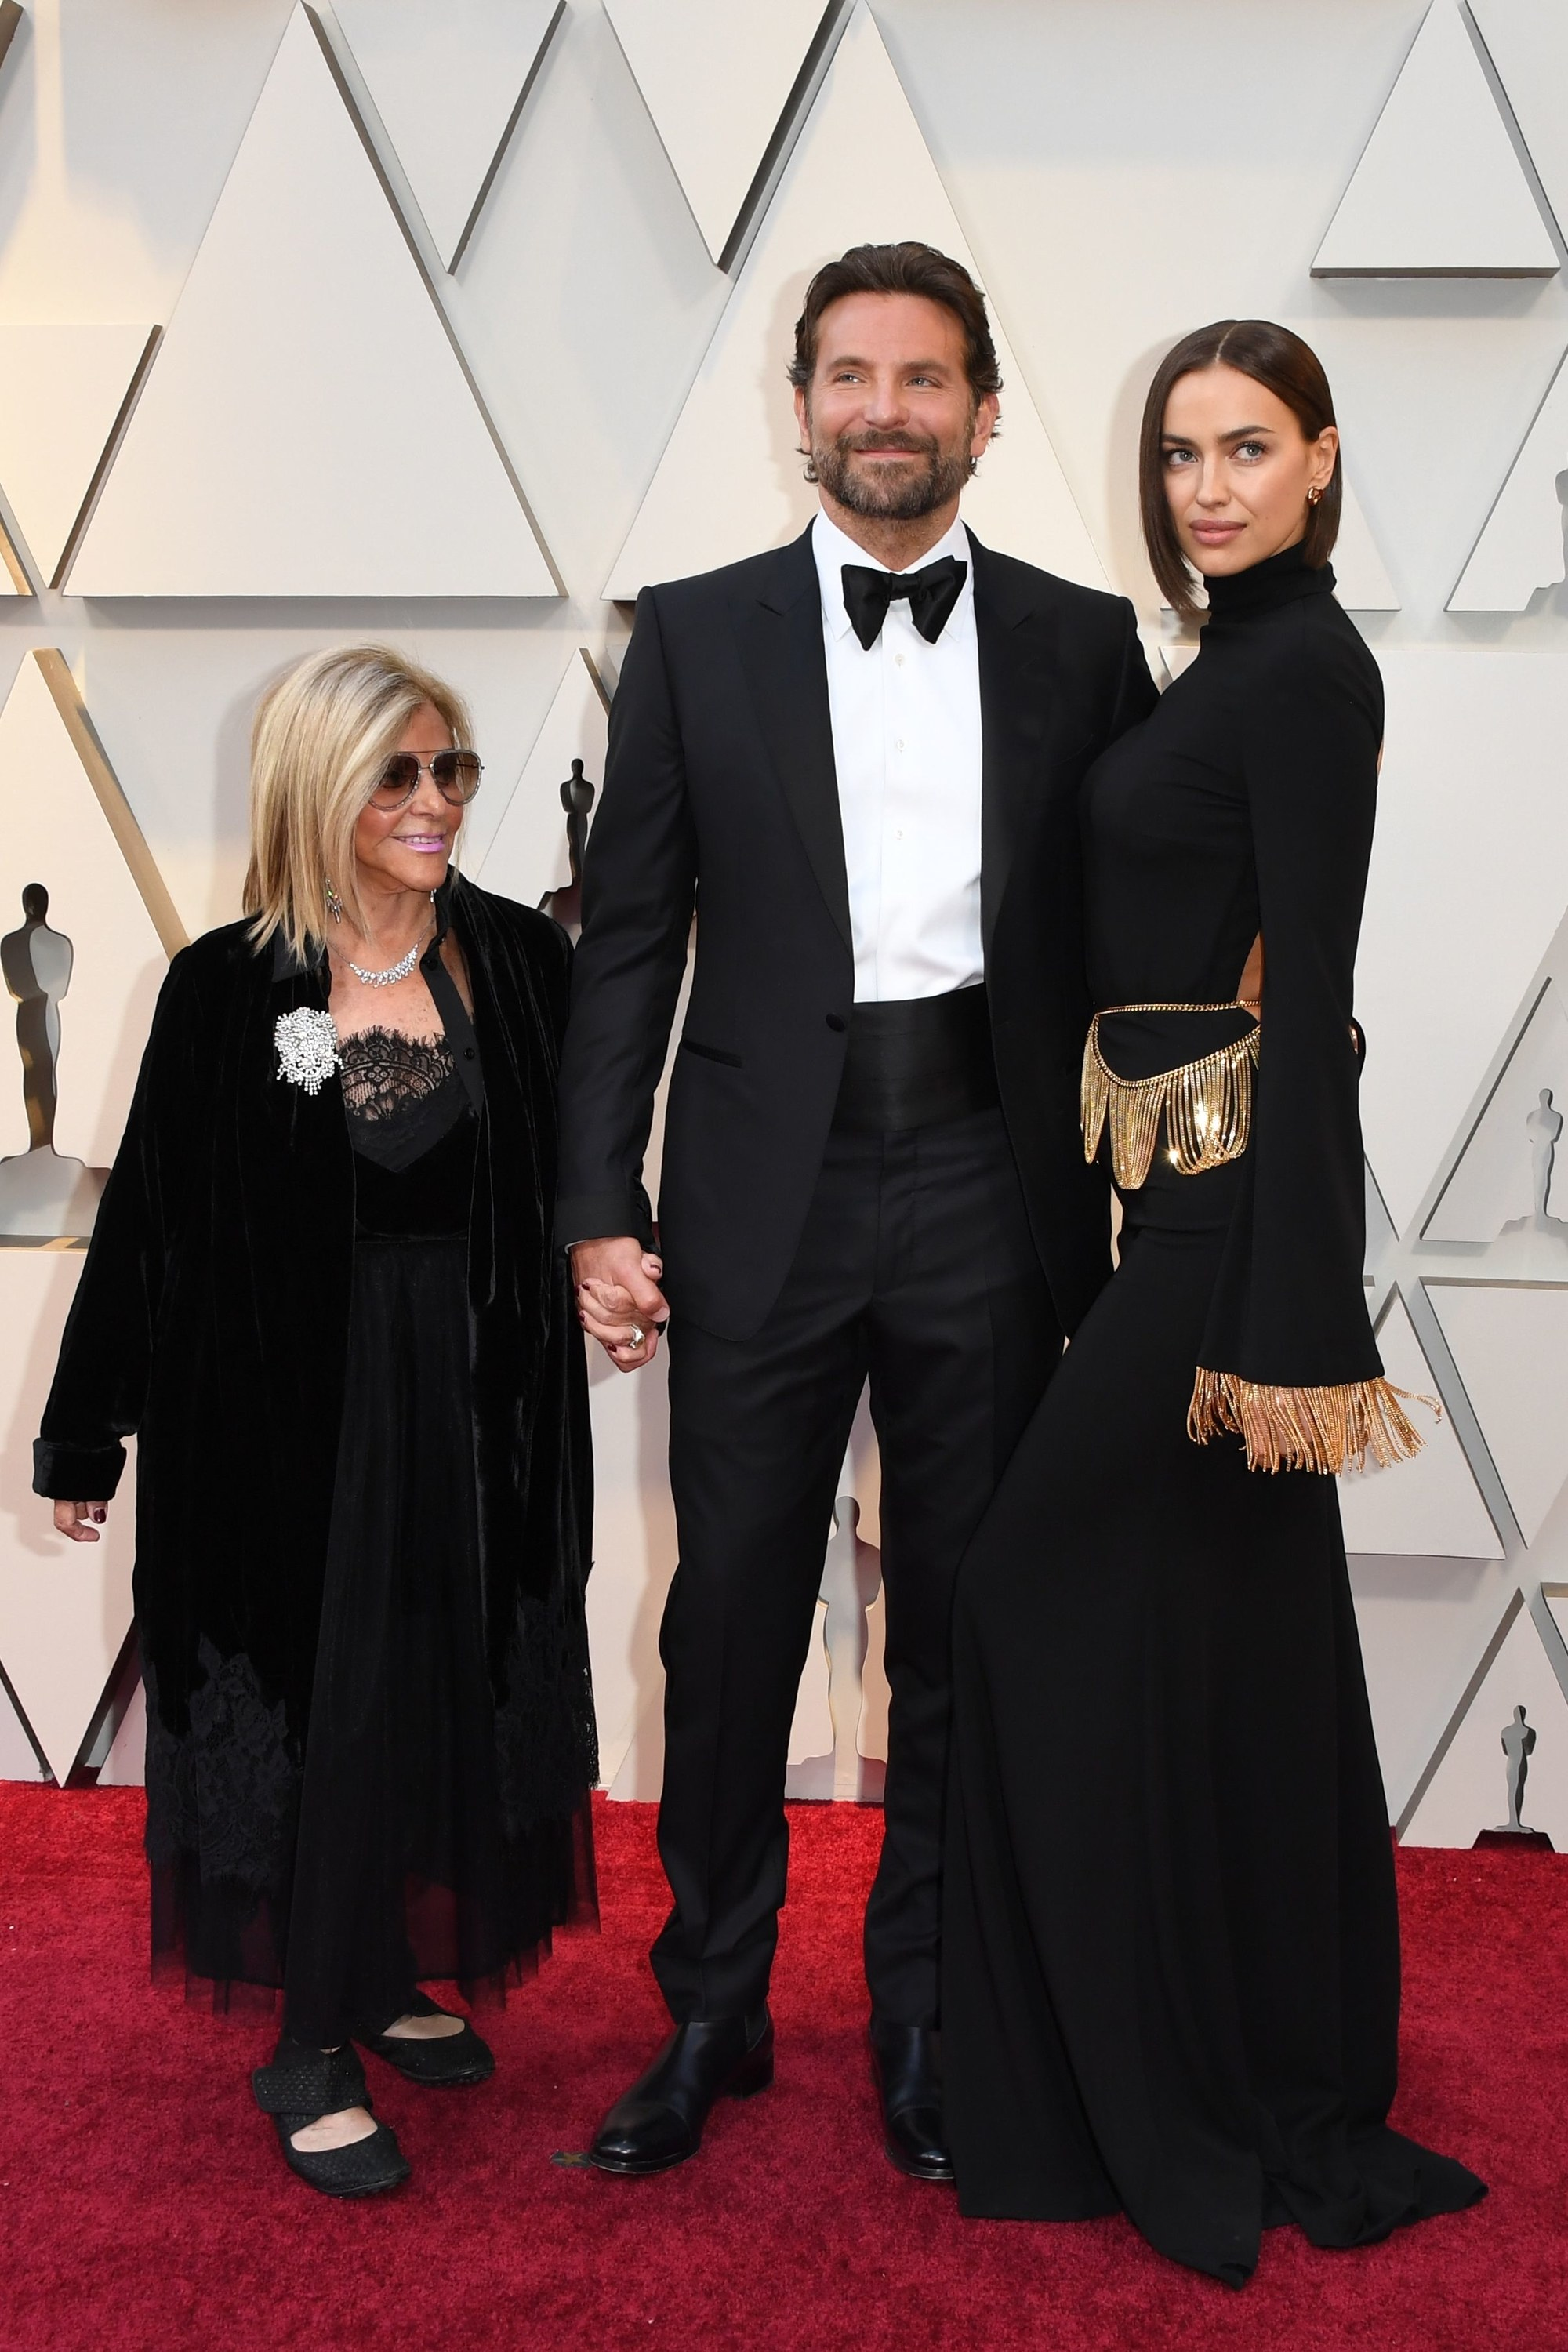 Gloria-Campano-Bradley-Cooper-Irina-Shayk-the-Oscars2019-Vogueint-Feb25-Getty-Images.jpg